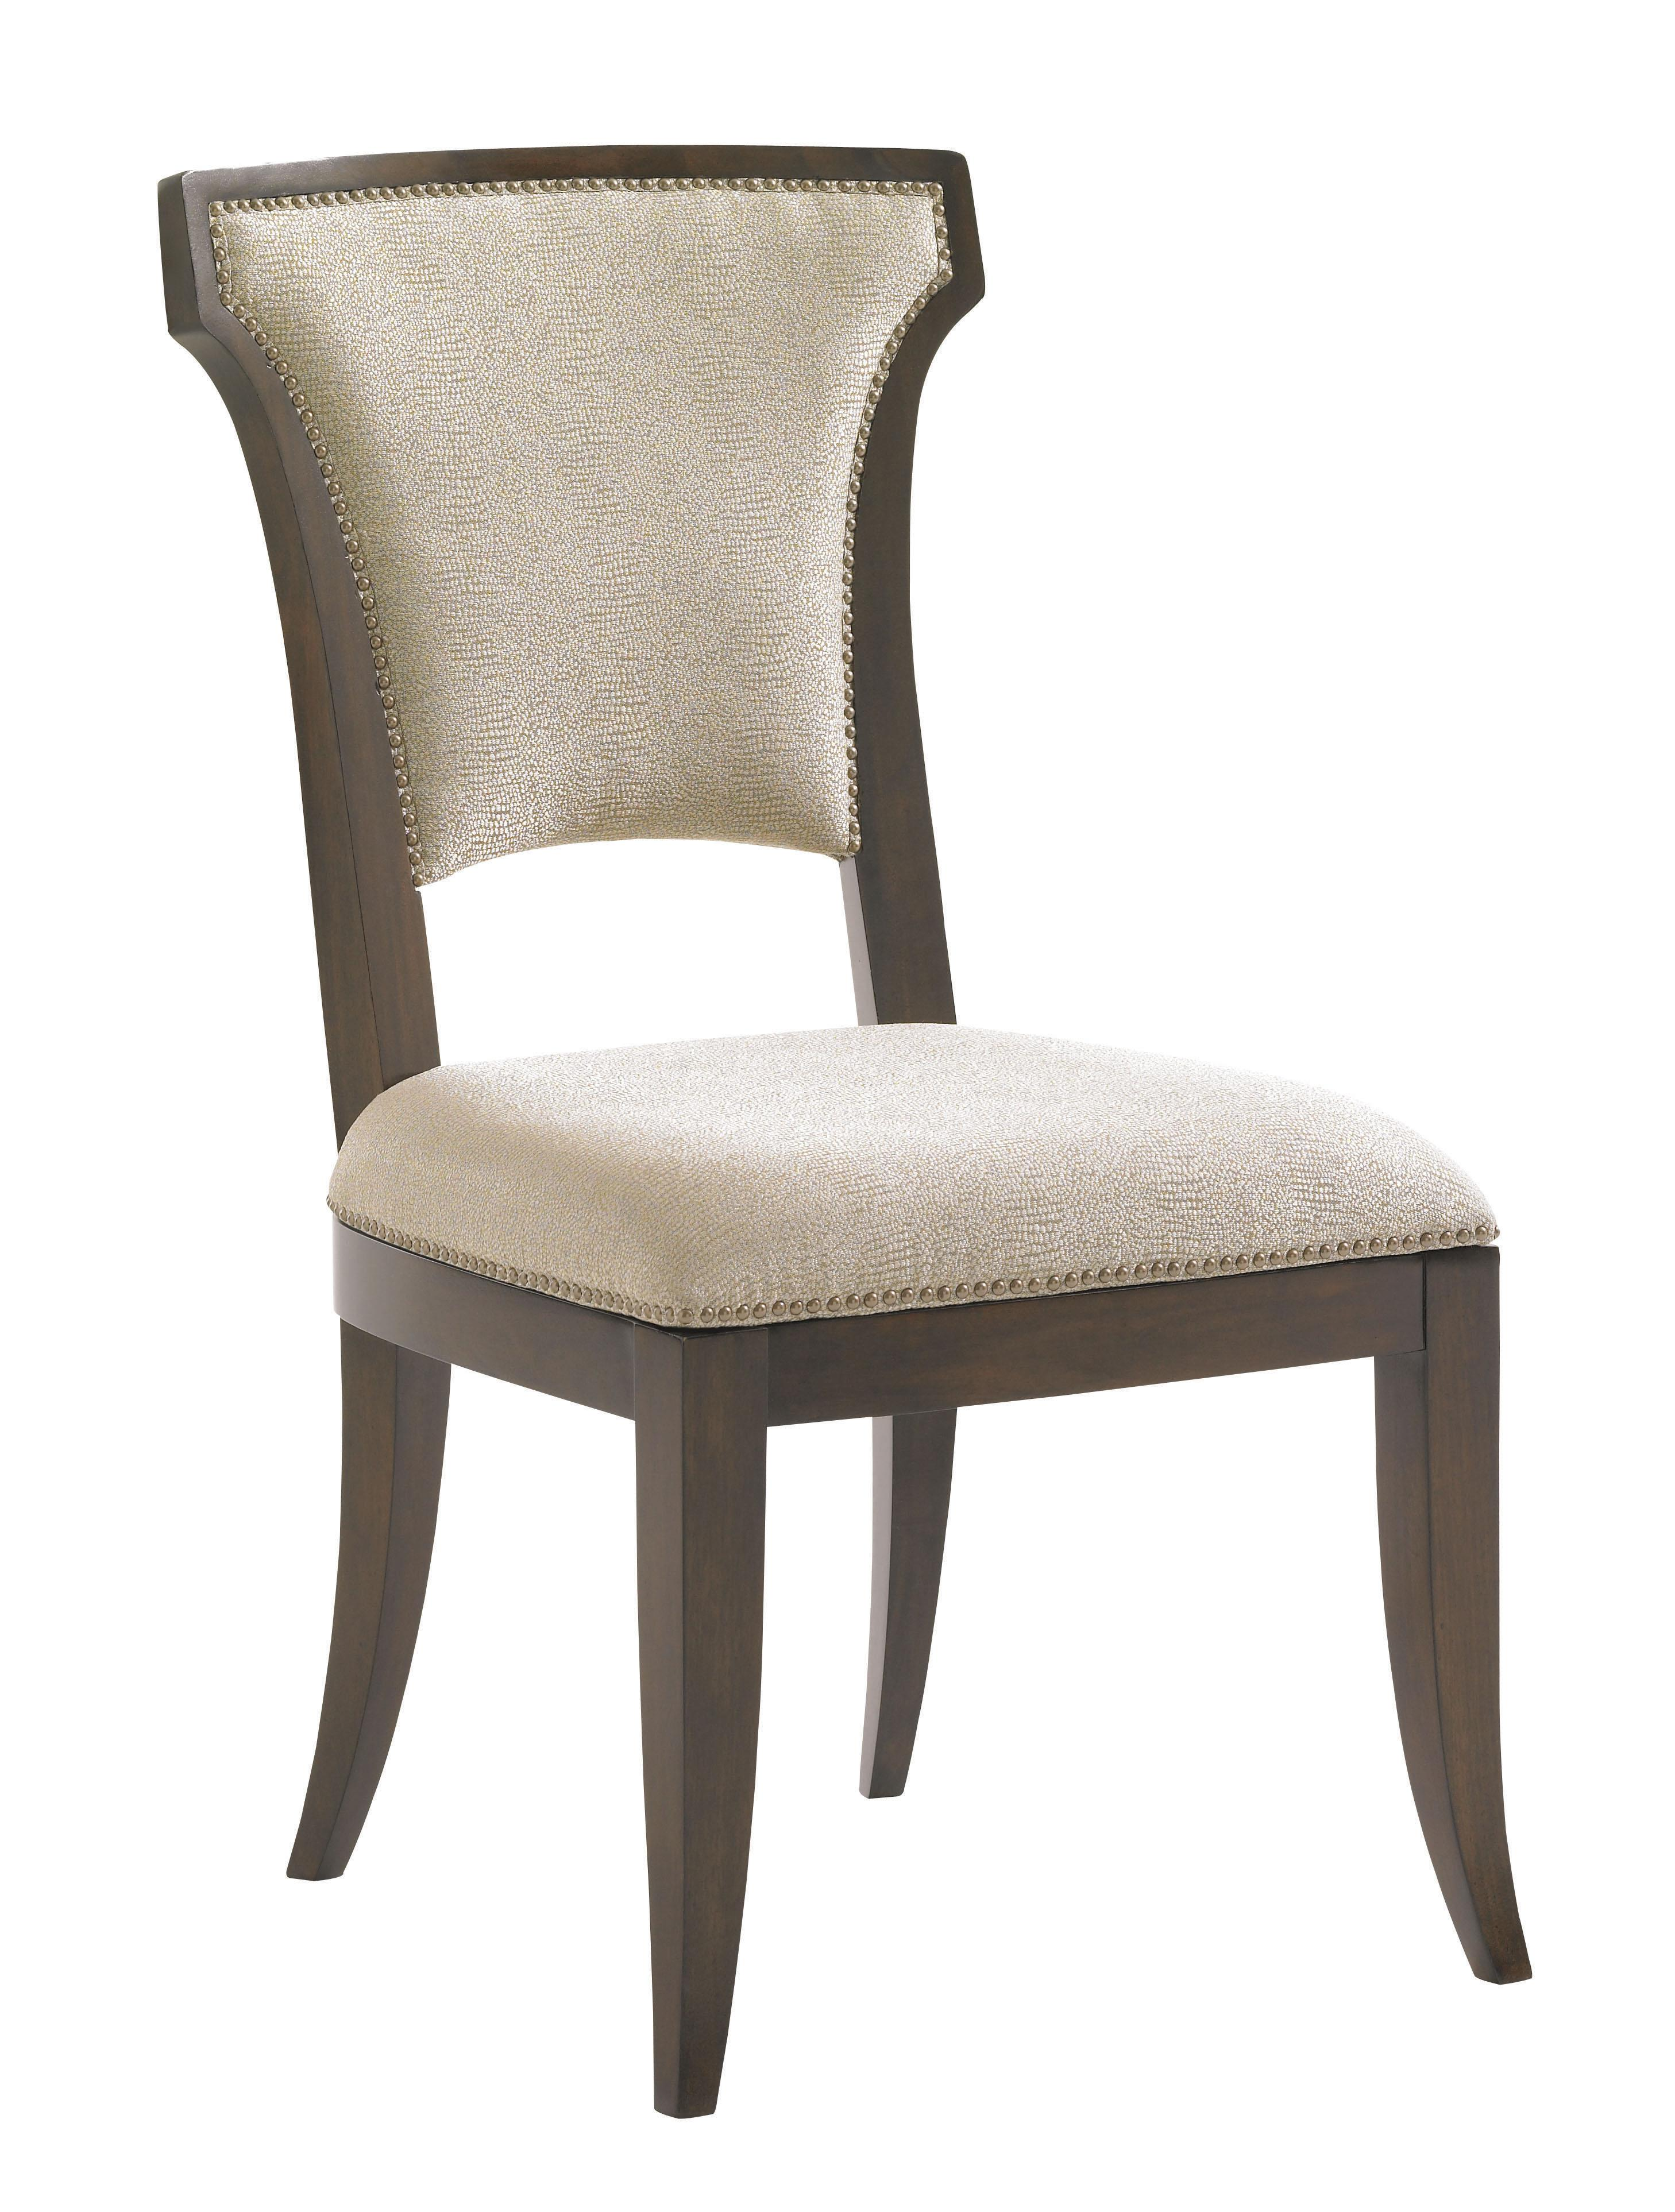 Tower Place Seneca Side Chair w/ Married Fabric by Lexington at Johnny Janosik